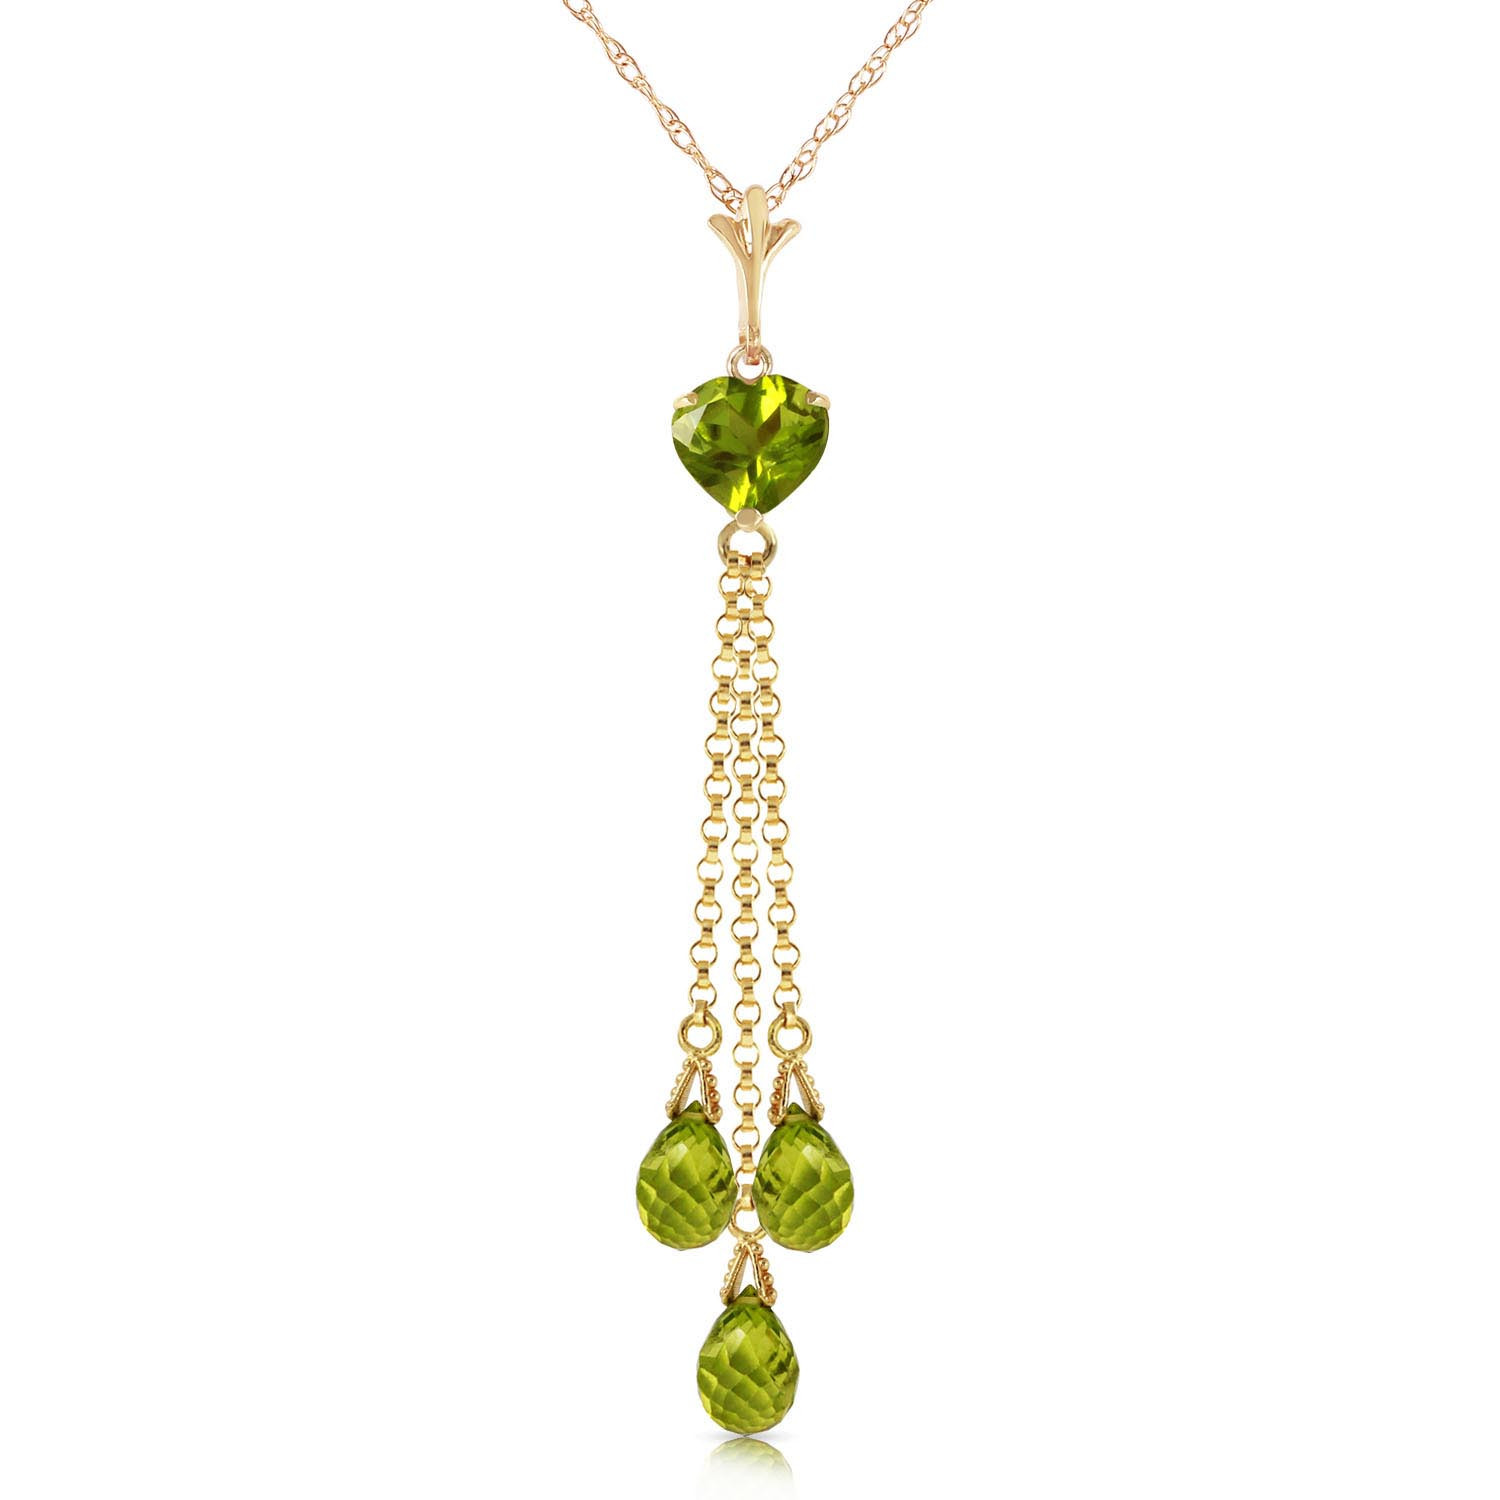 Peridot Comet Tail Pendant Necklace 4.75 ctw in 9ct Gold